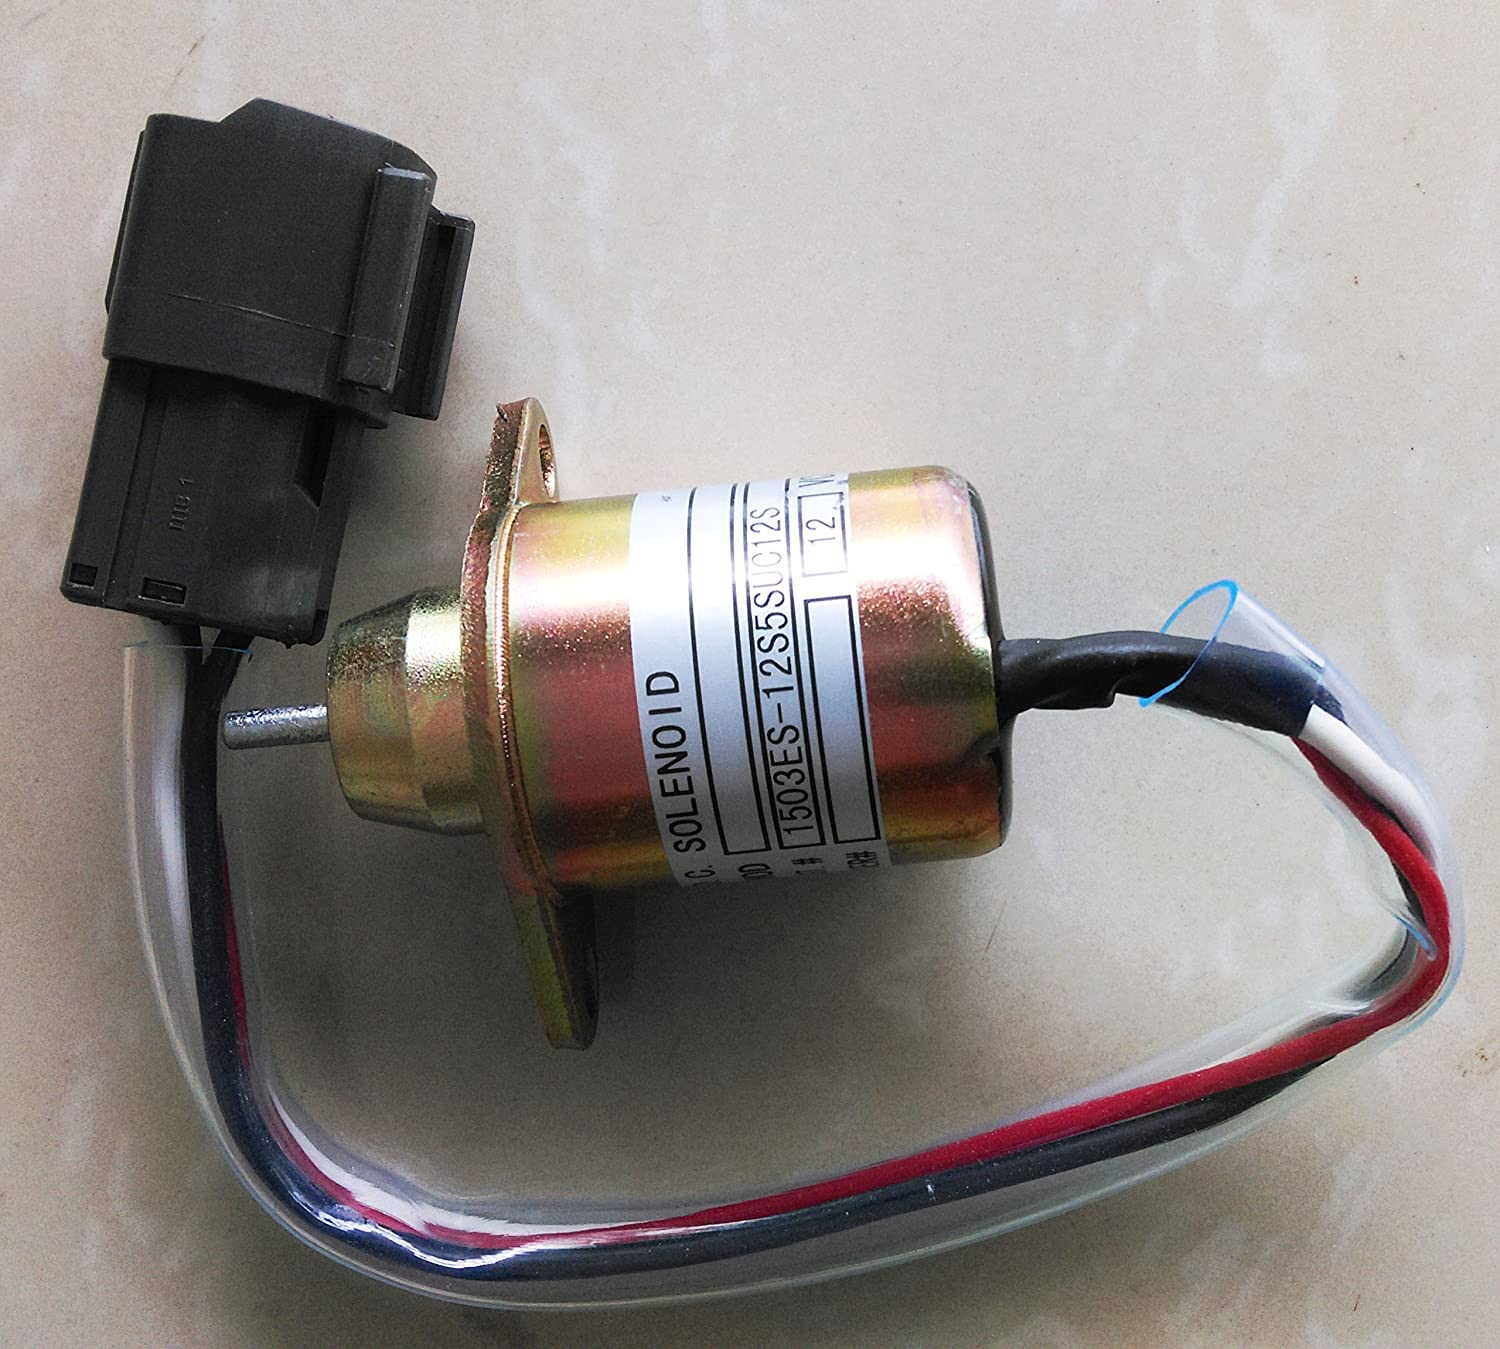 Blueview 12V Shut off solenoid 1503ES-12S5SUC12S for YANMAR engine Komatsu PC40, PC45 and other machinery